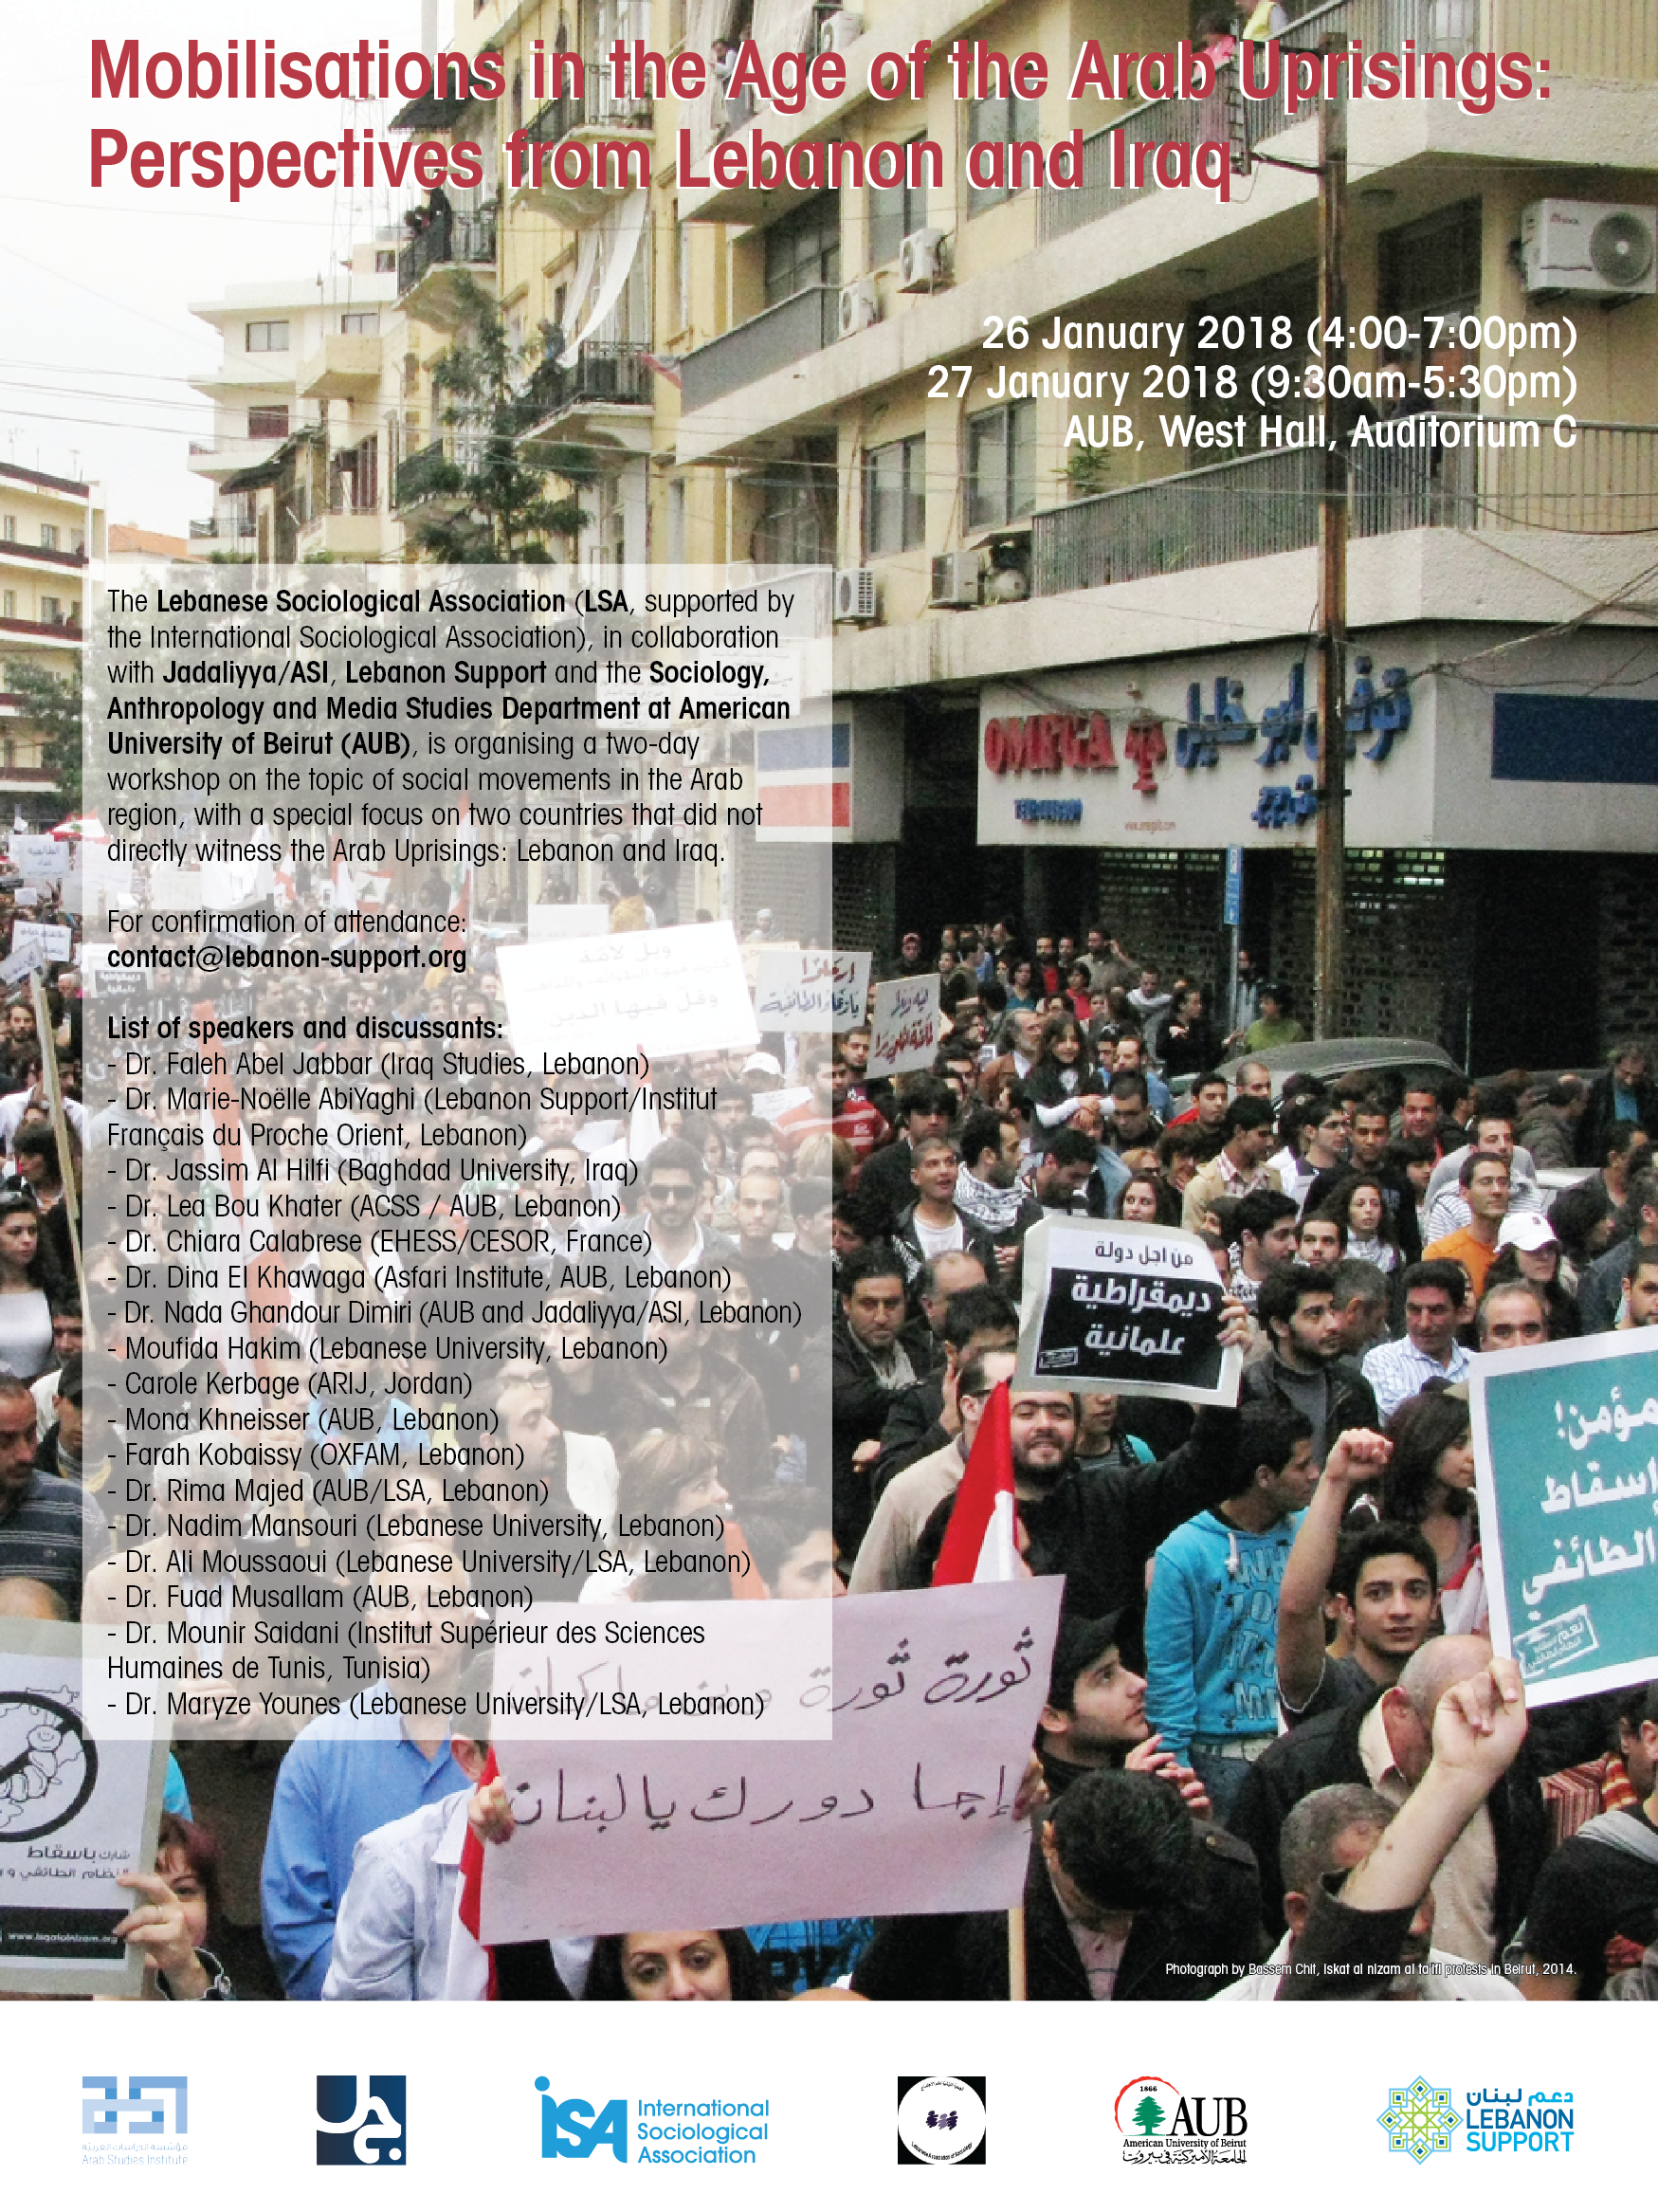 Mobilisations in the Age of the Arab Uprisings: Perspectives from Lebanon and Iraq event poster